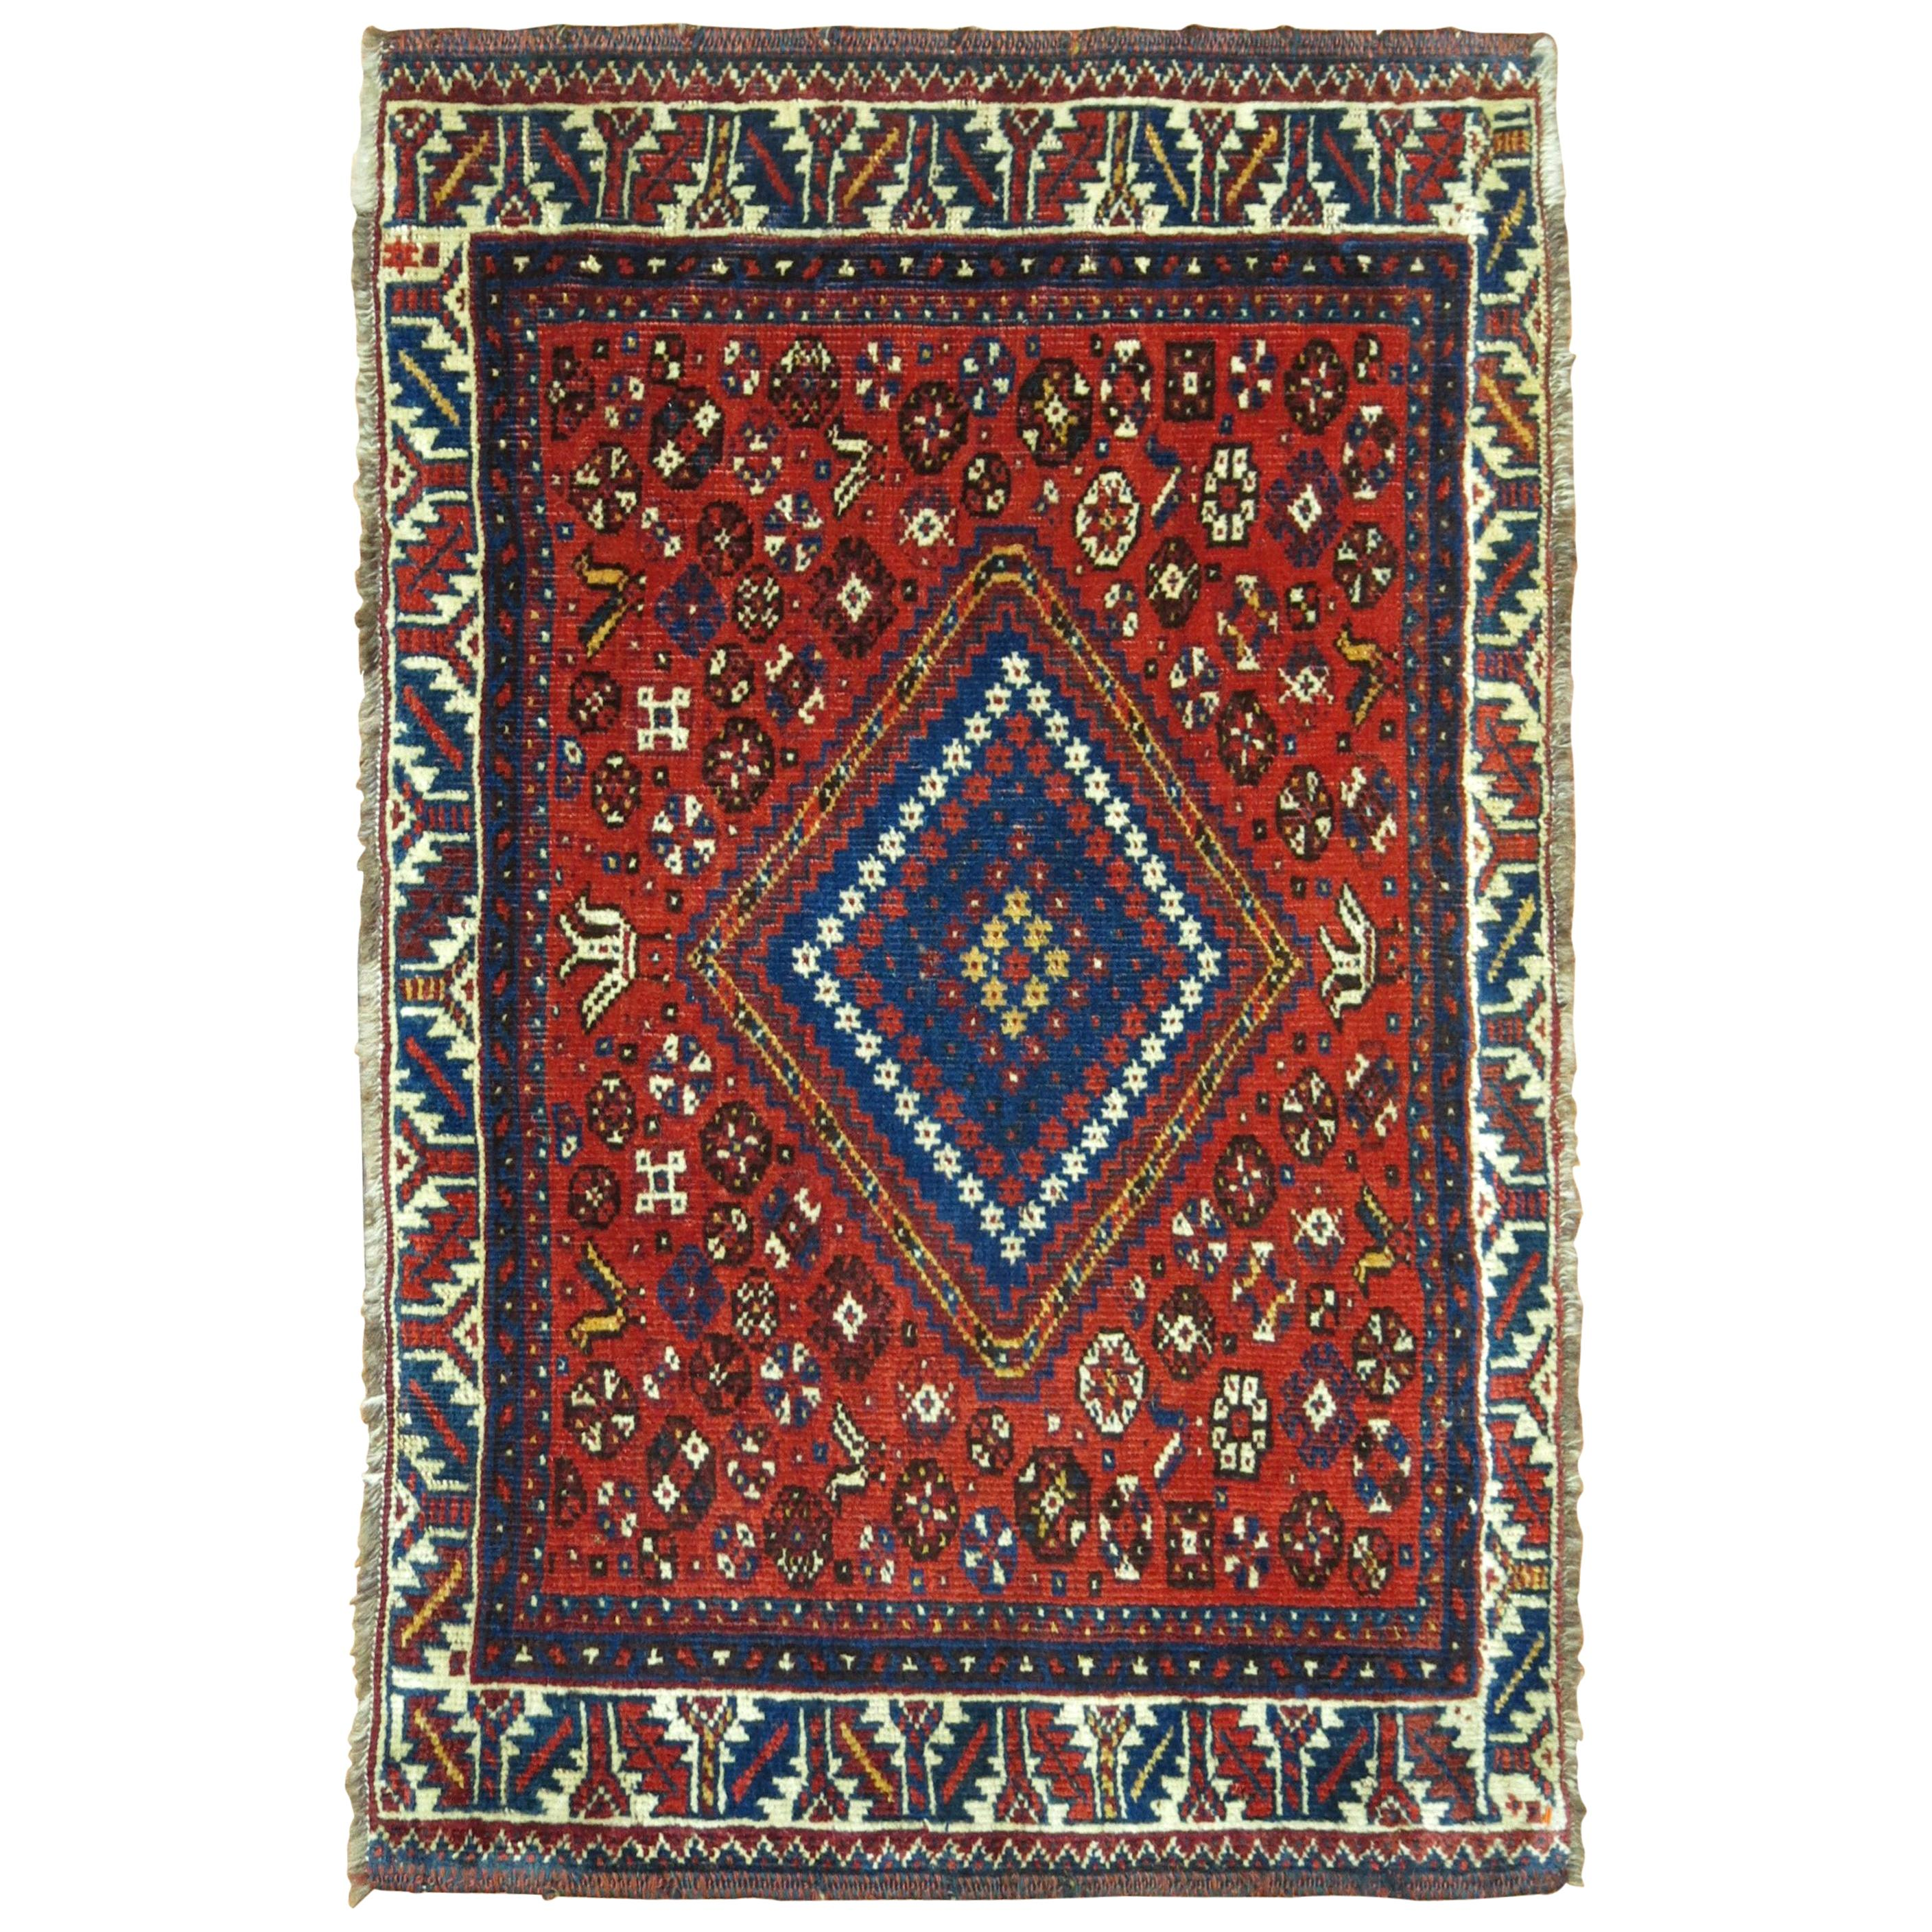 Tribal Red Blue Antique Persian Rug Mat